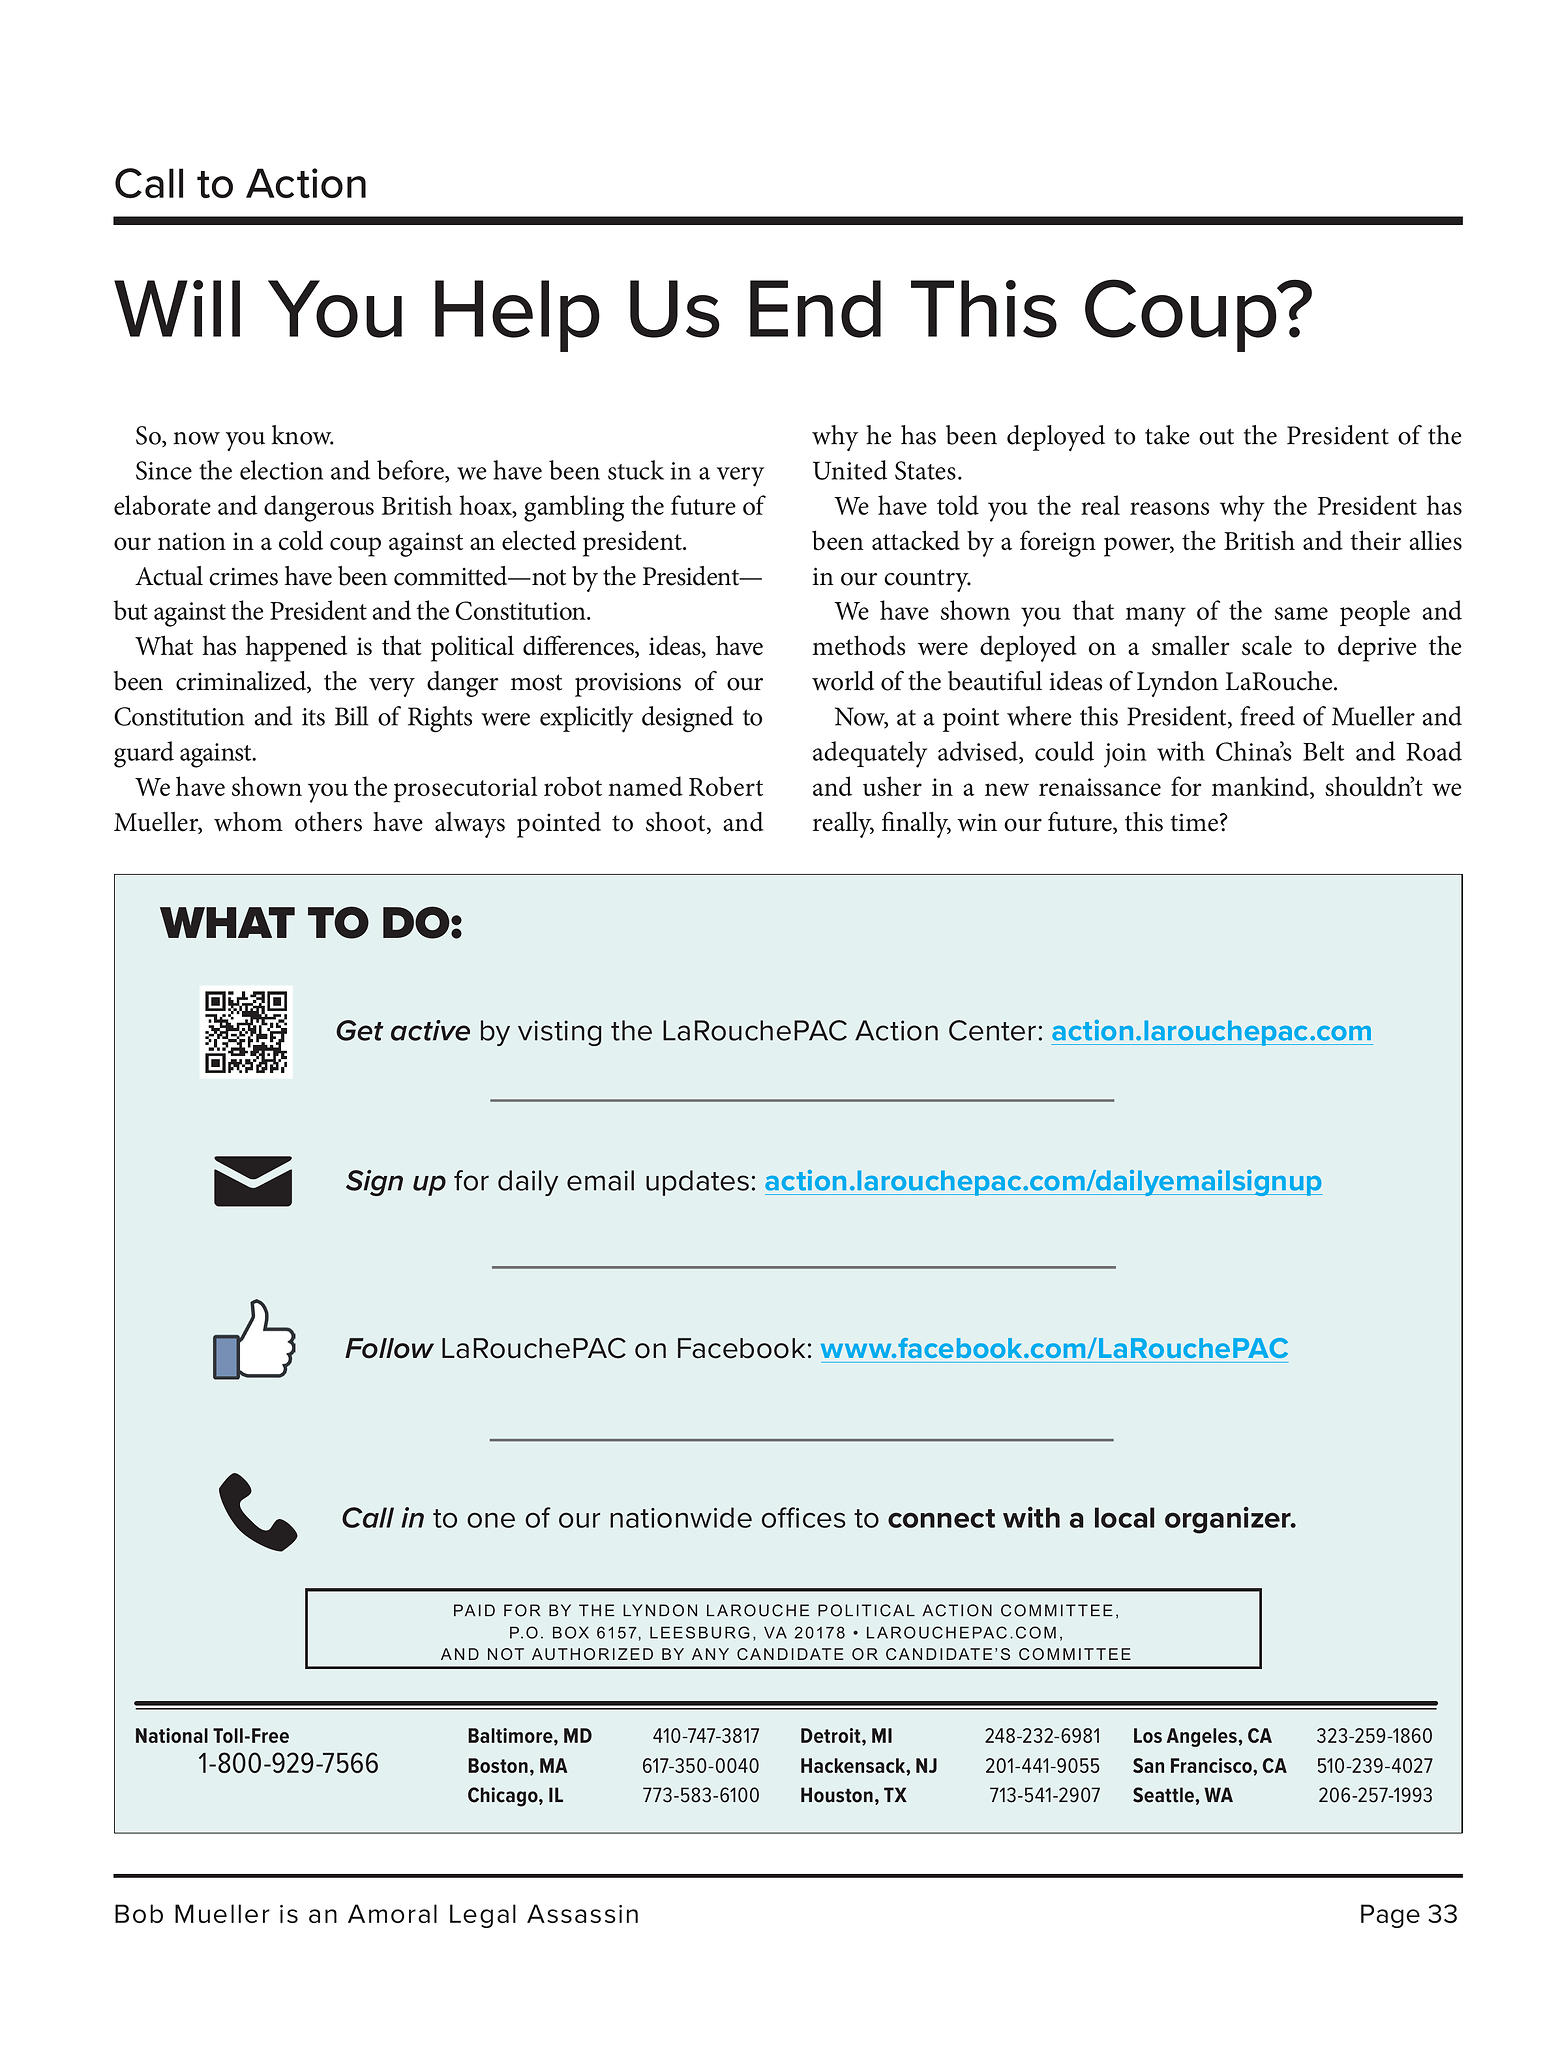 Will you help us end this coup?